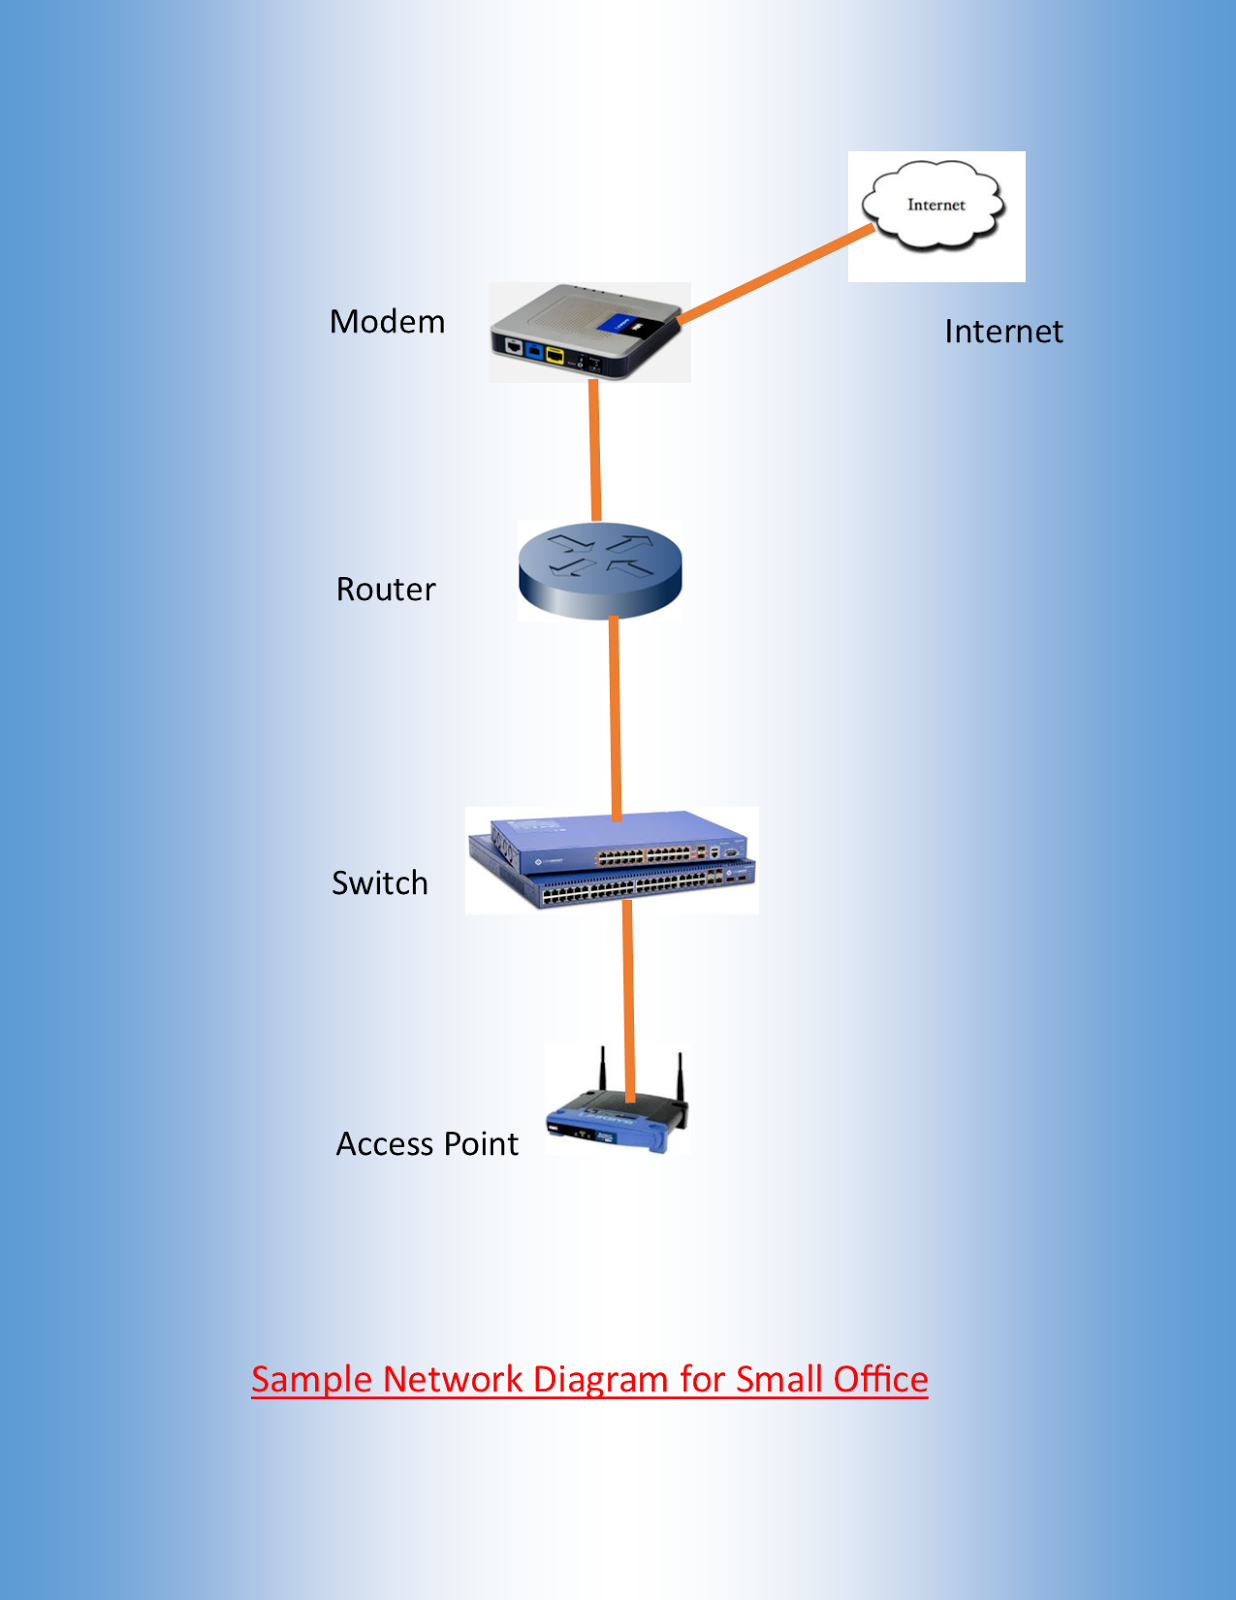 Tnw computer it solutions sample network diagram for small office ccuart Image collections